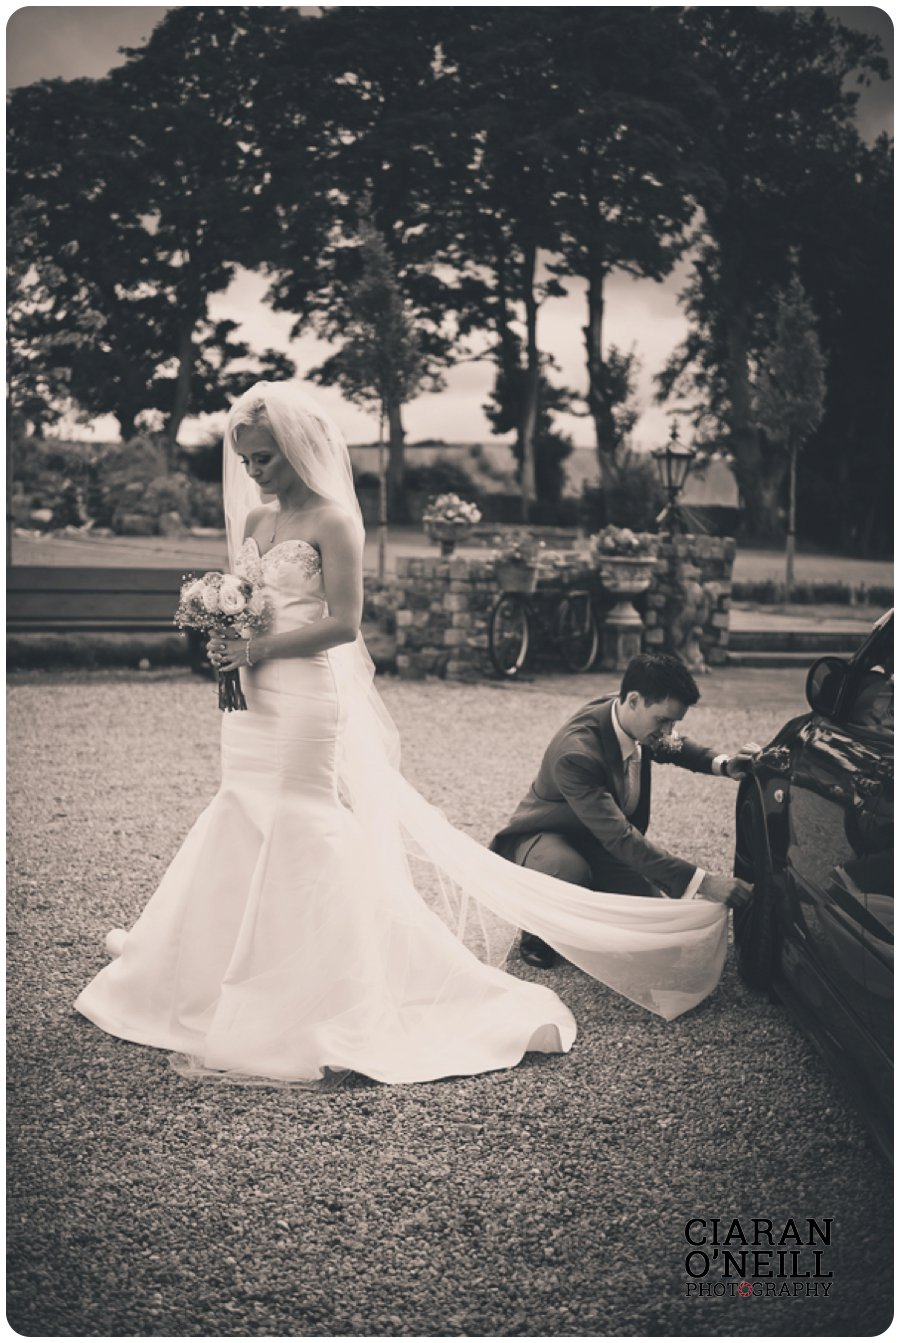 Clare & Mark's wedding at Darver Castle by Ciaran O'Neill Photography 12